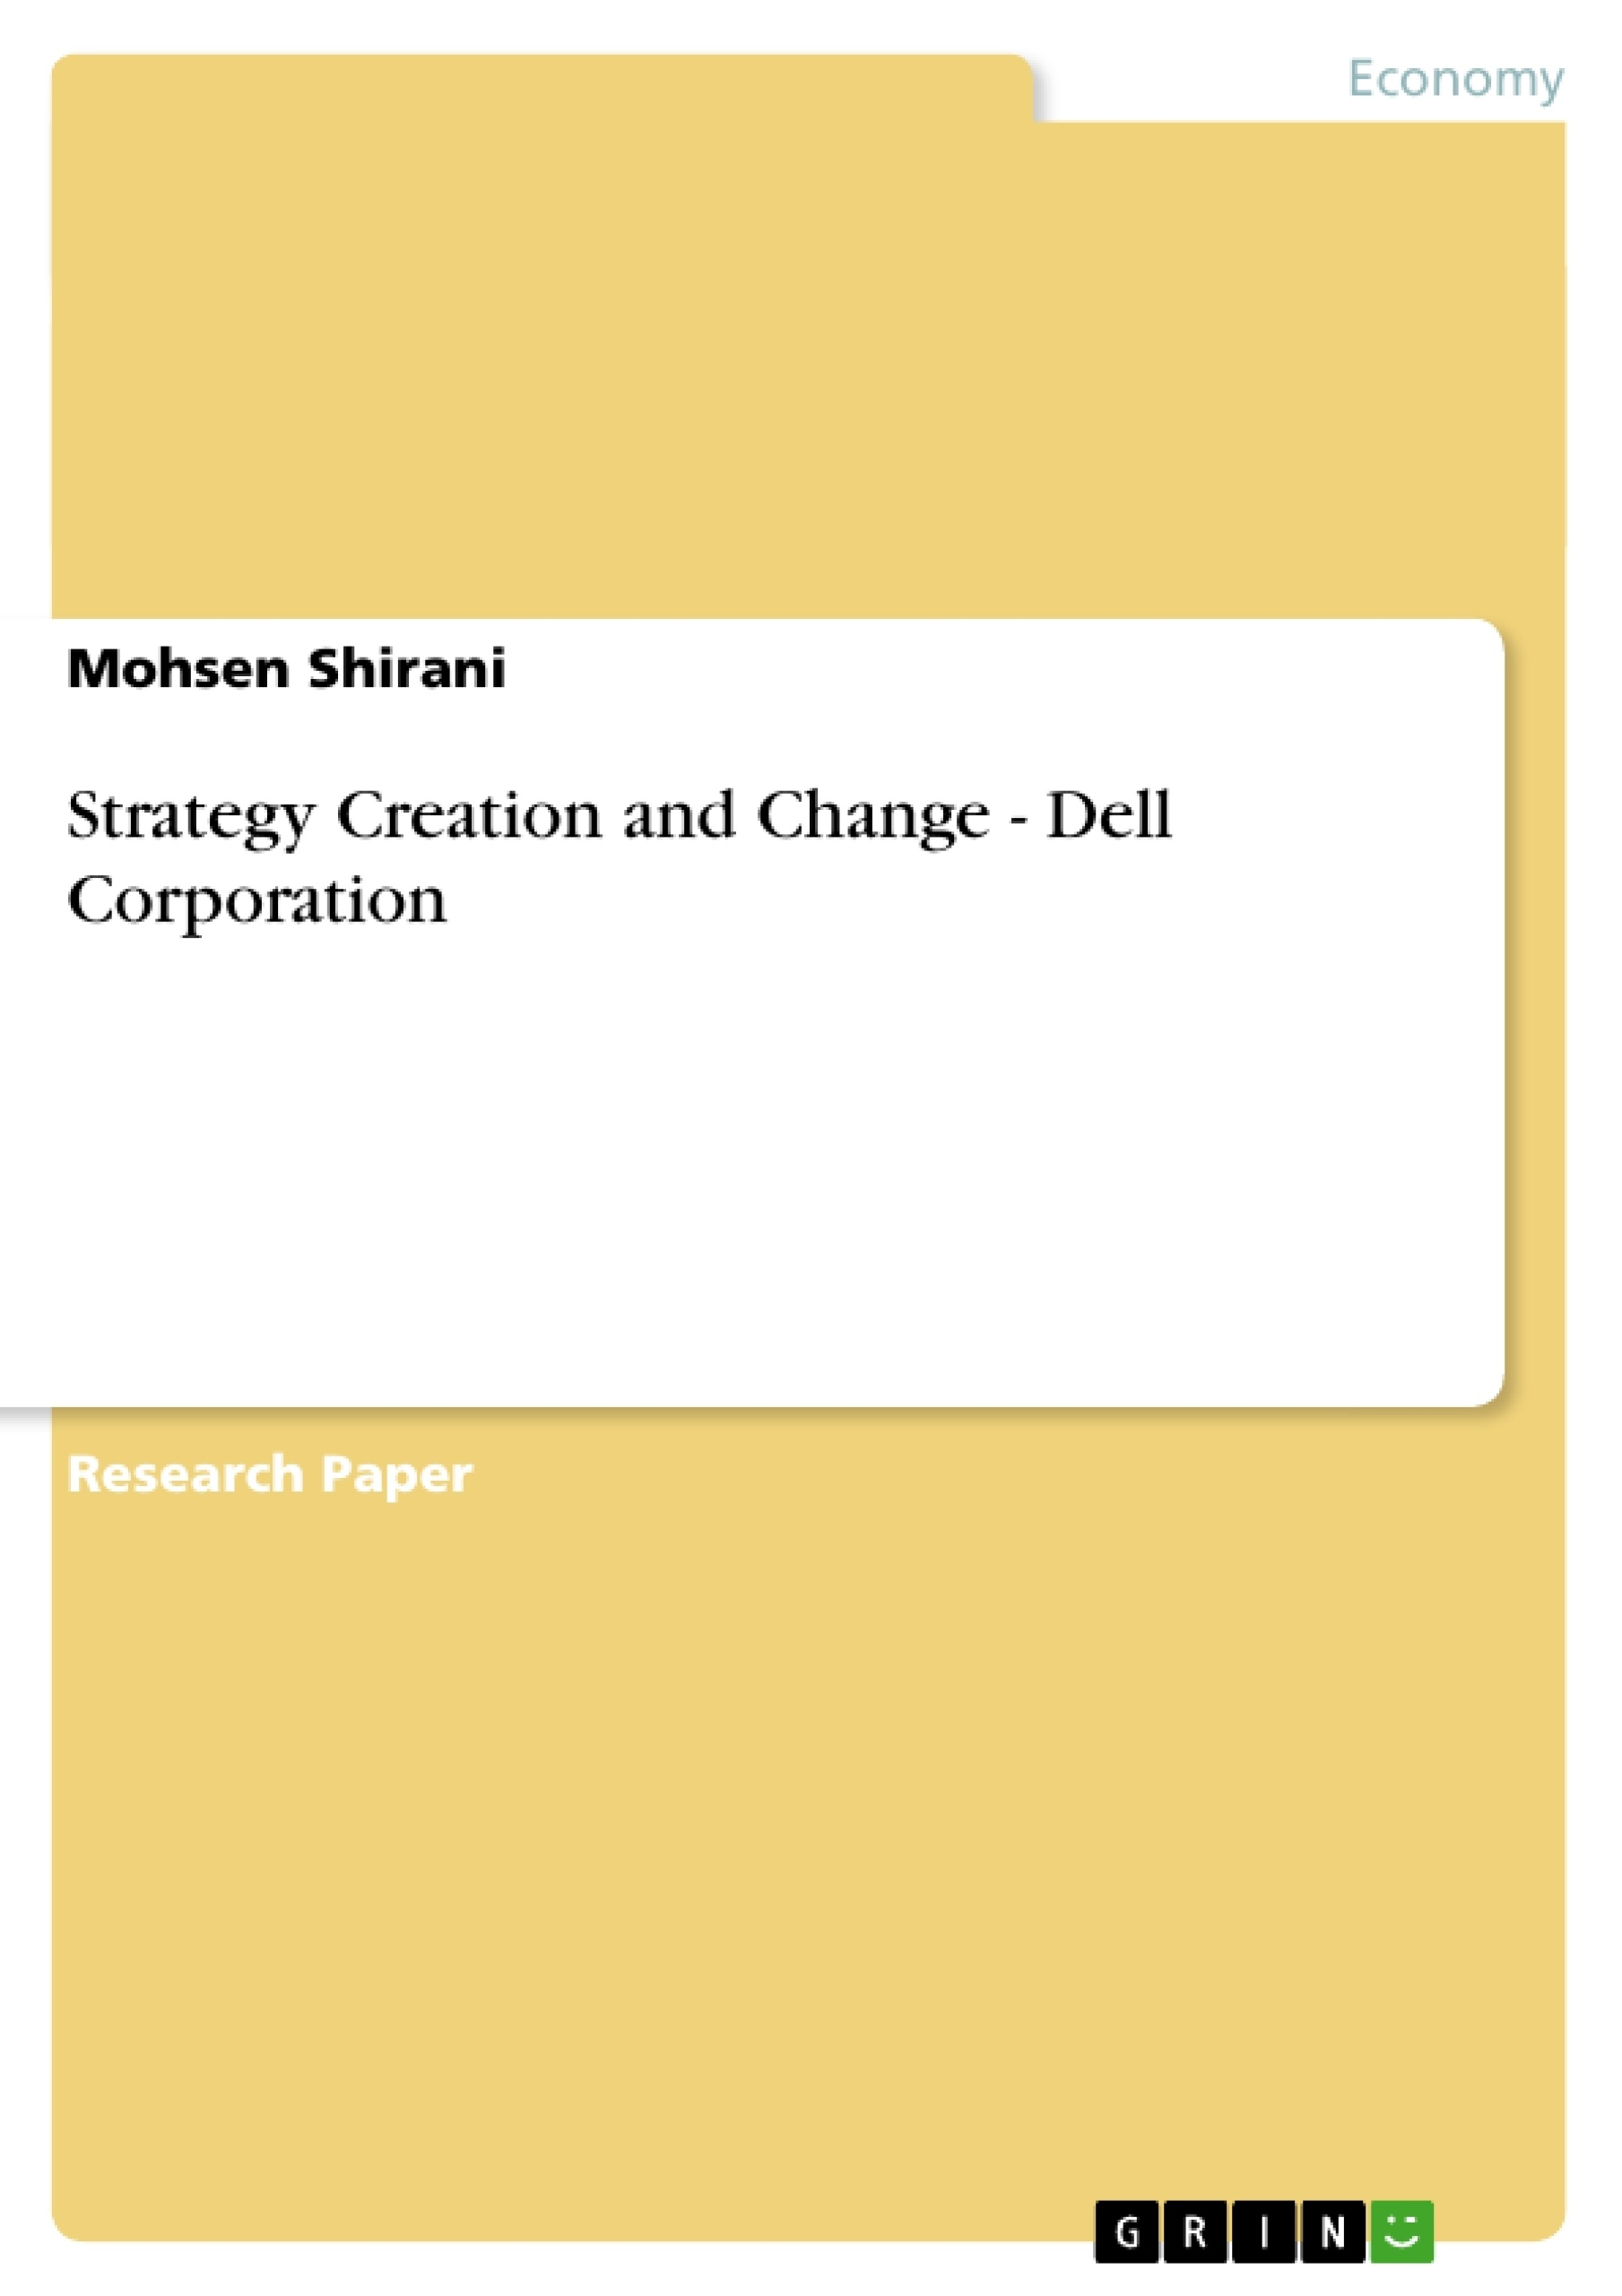 Title: Strategy Creation and Change - Dell Corporation